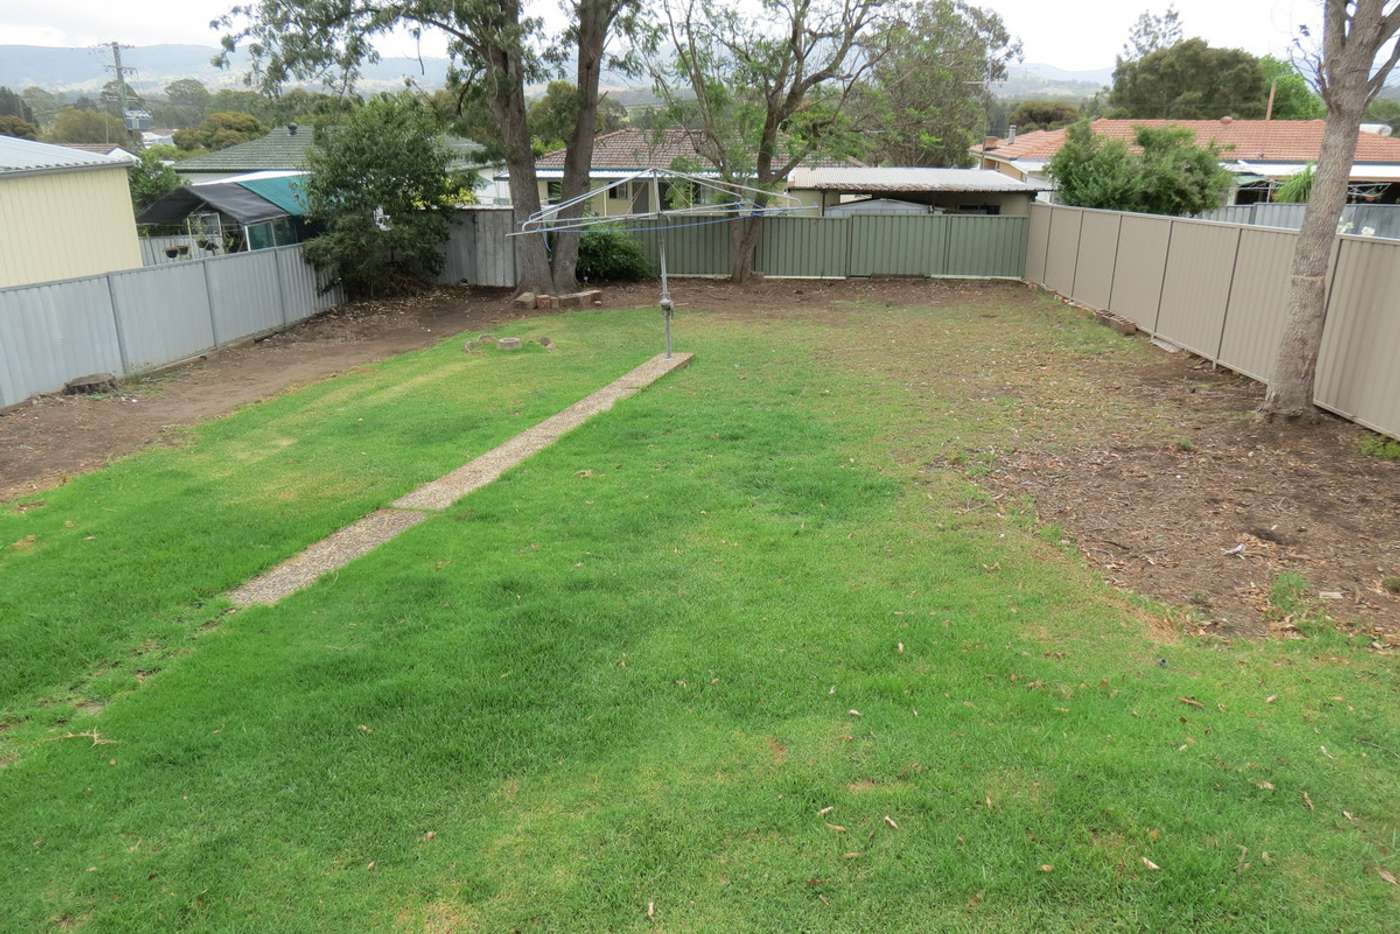 Seventh view of Homely house listing, 27 Desmond Street, Cessnock NSW 2325